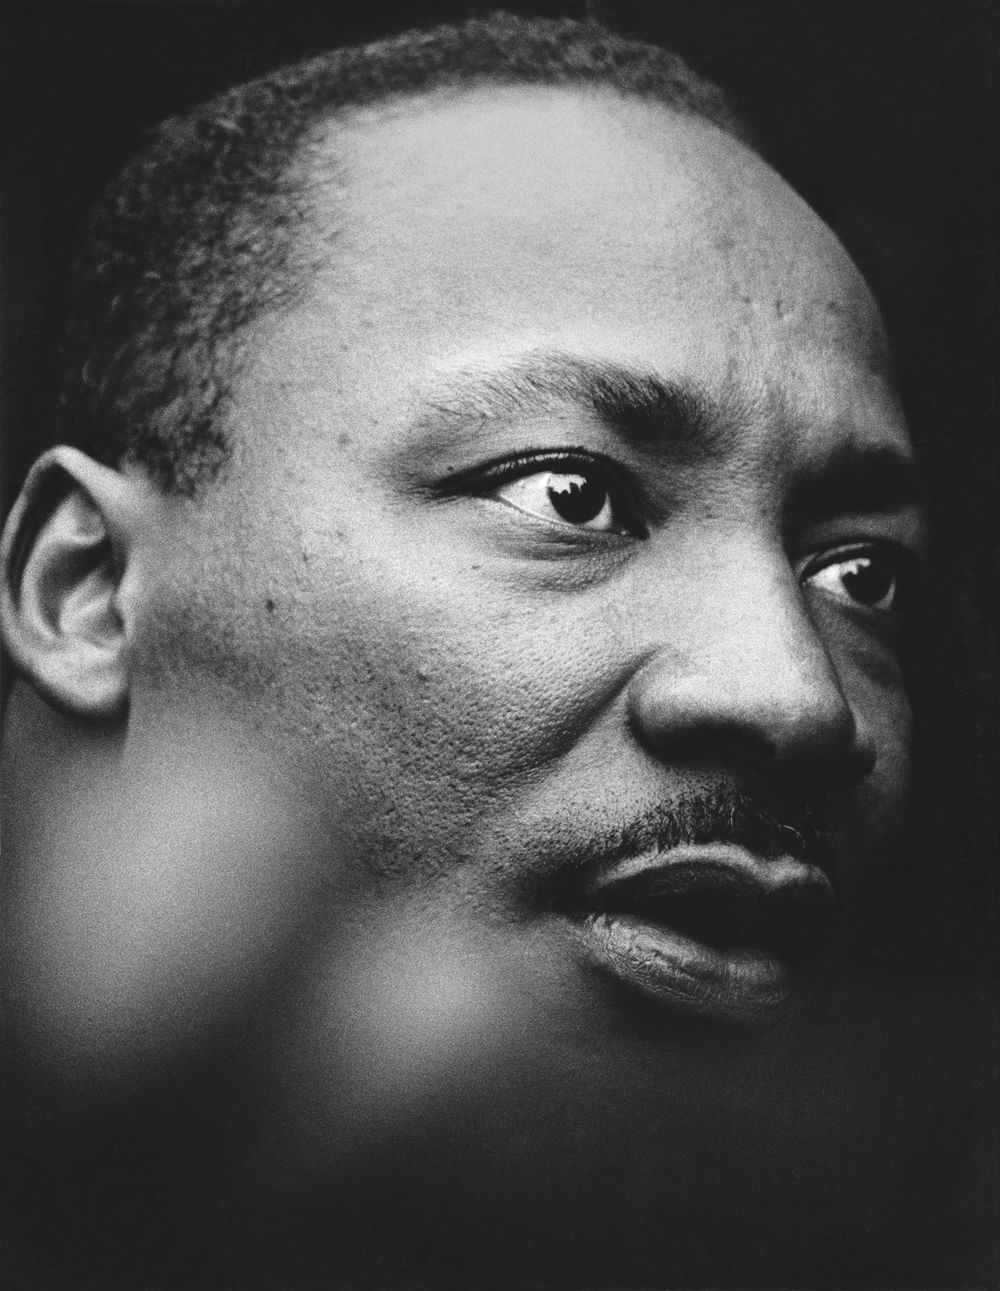 © Jean-Pierre Laffont, April 15, 1967, Martin Luther King Jr.  MLK outside the UN building delivering a speech denouncing the Vietnam War. We can see the UN building reflected in his eyes.  » more pictures of Martin Luther King, Jr. « | » more photos...